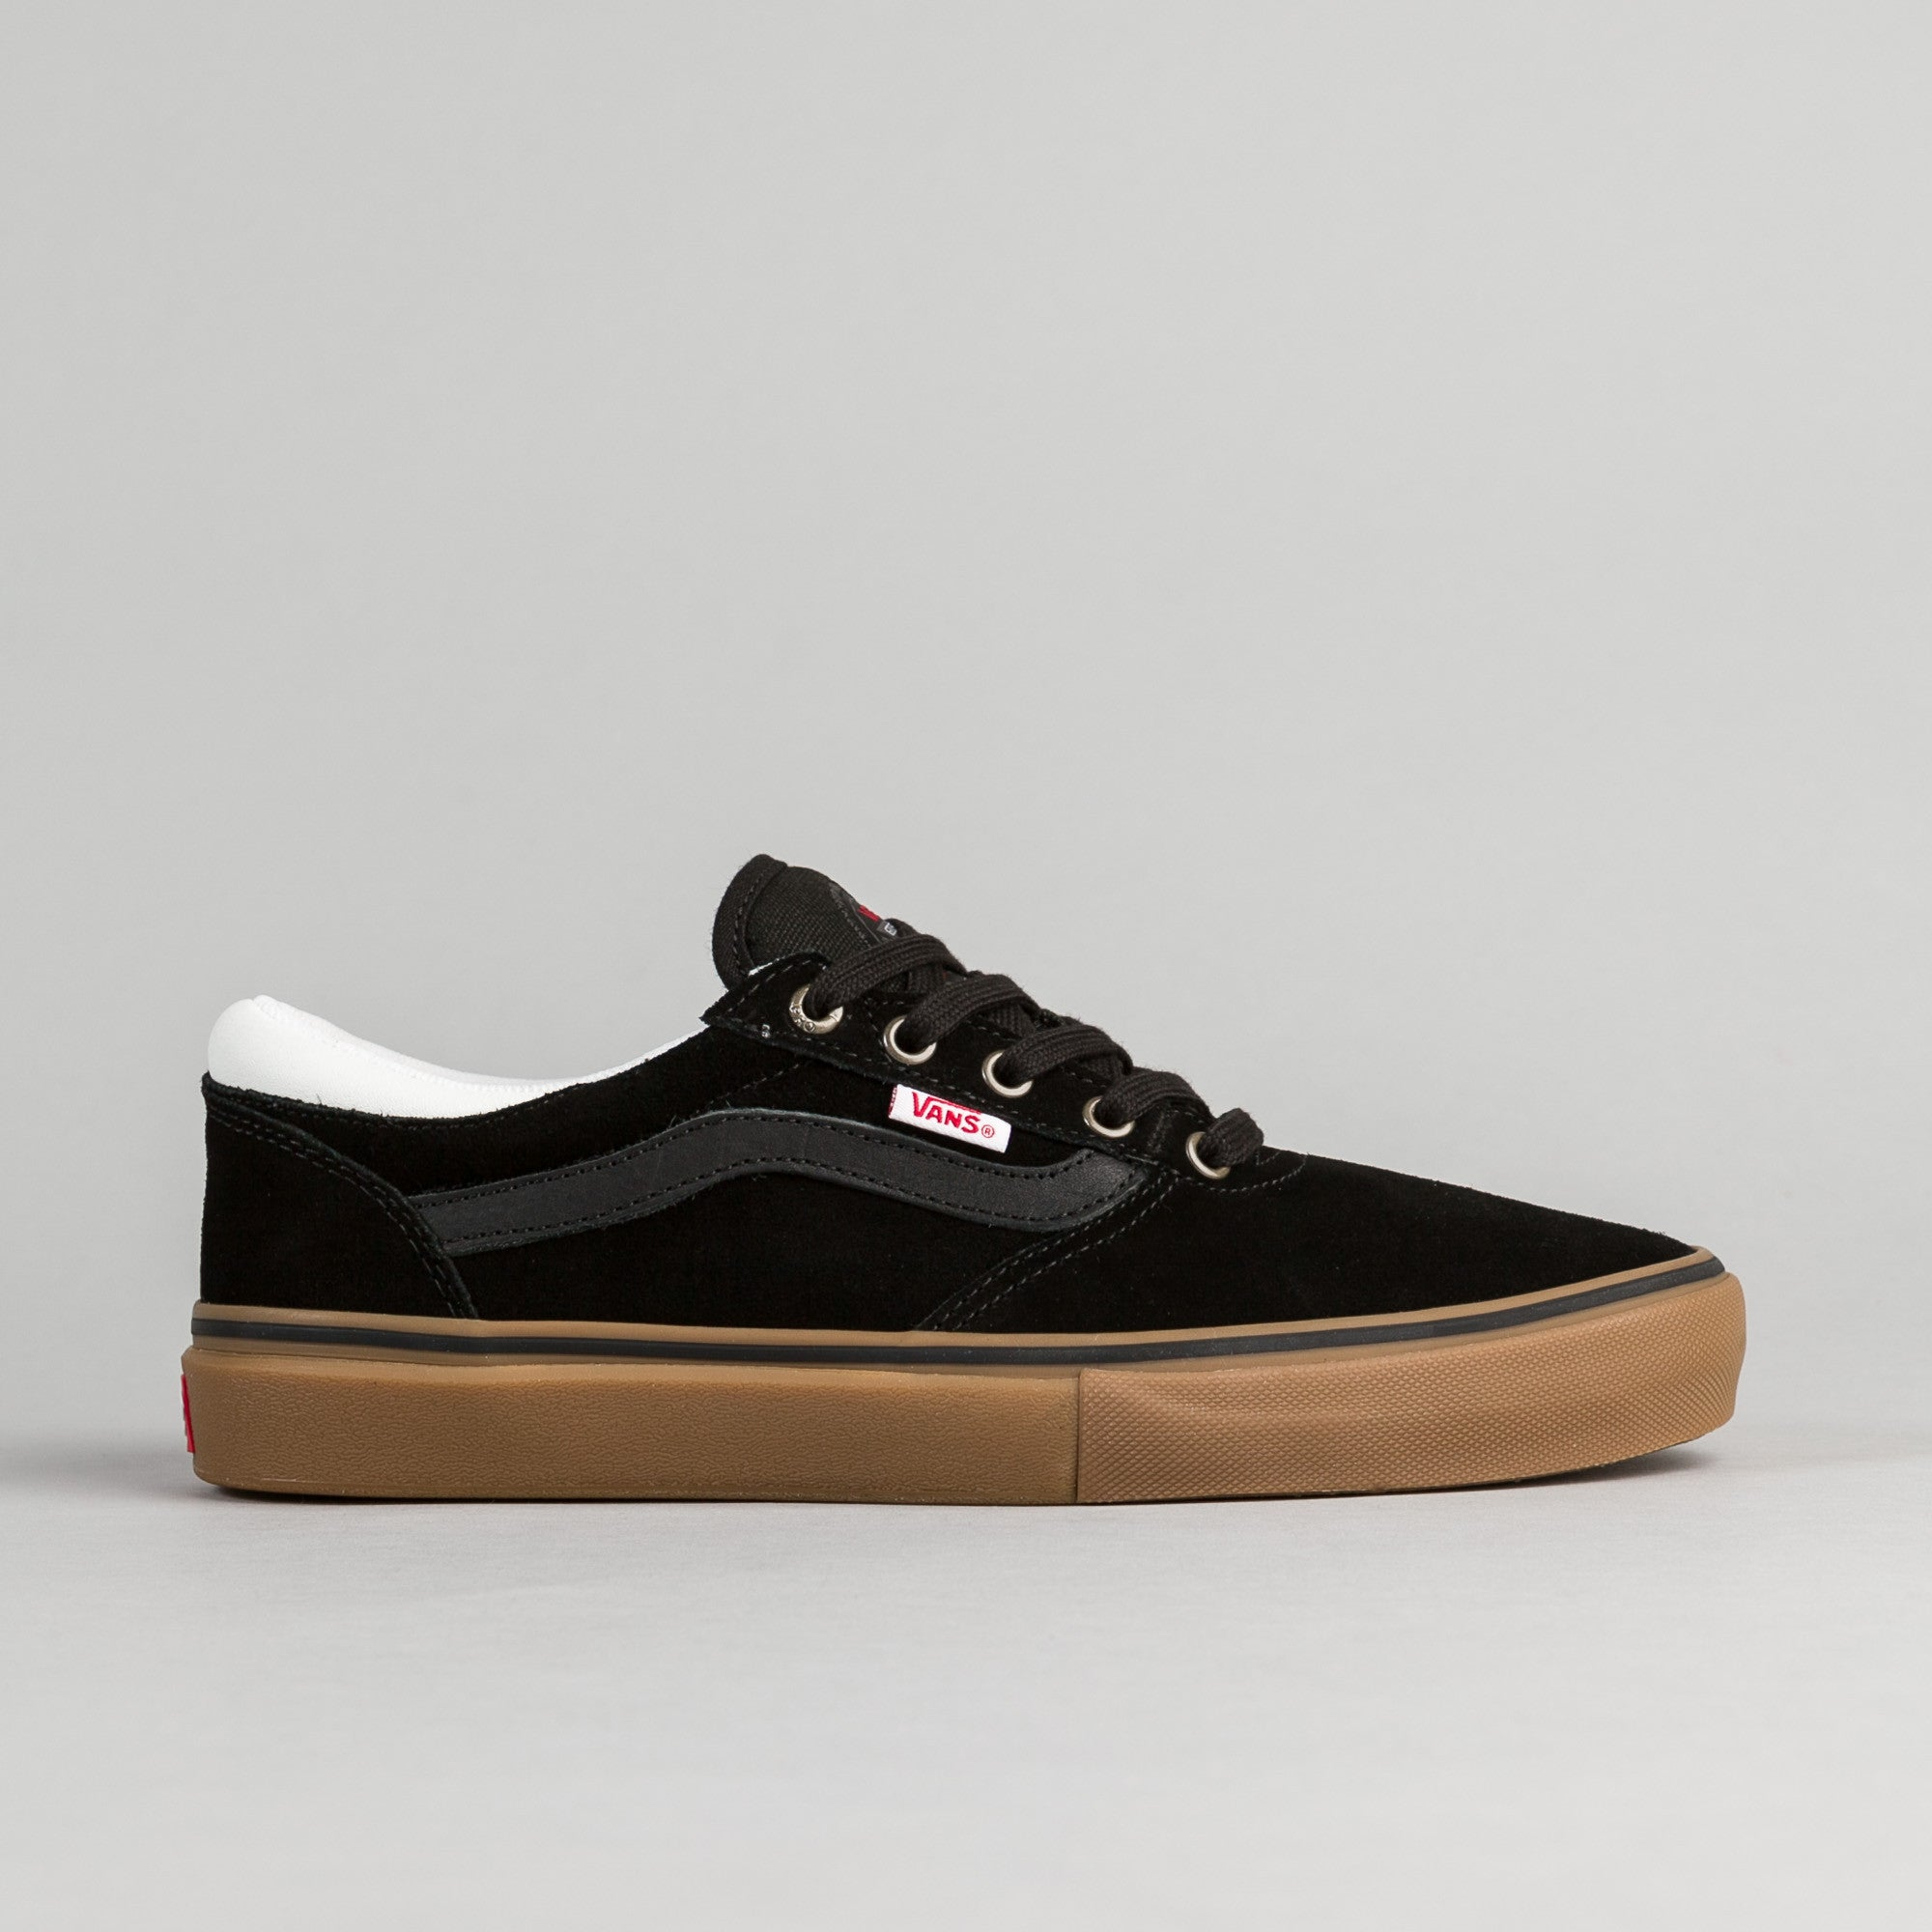 22687500fe Vans Gilbert Crockett Pro Shoes - Black   White   Gum